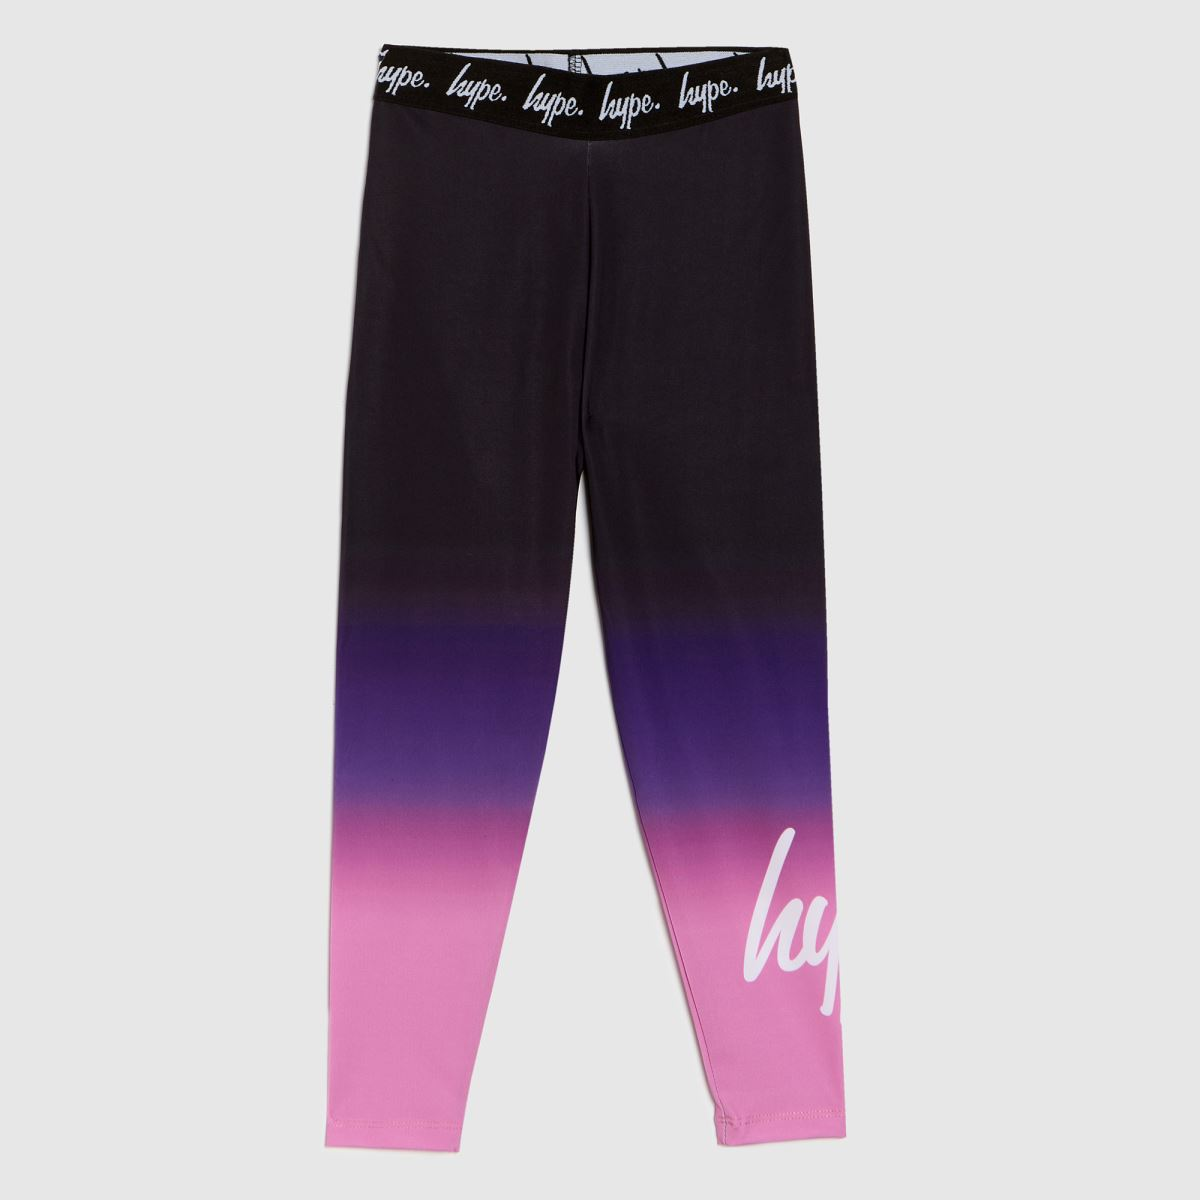 Hype Black & Purple Girls Leggings Sweetshop Fade